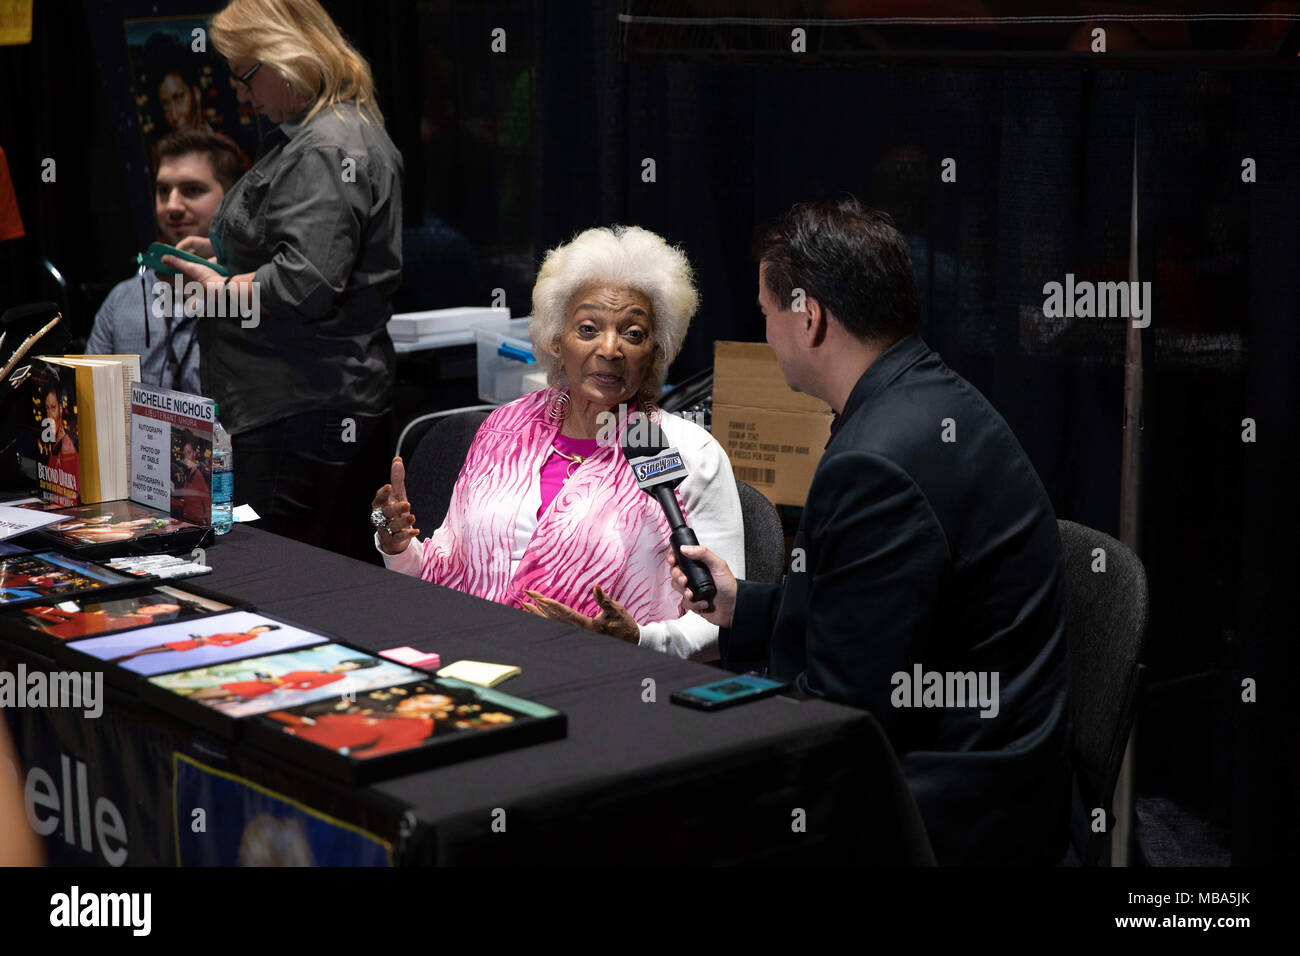 Uhura Stock Photos  Uhura Stock Images - Alamy-6746